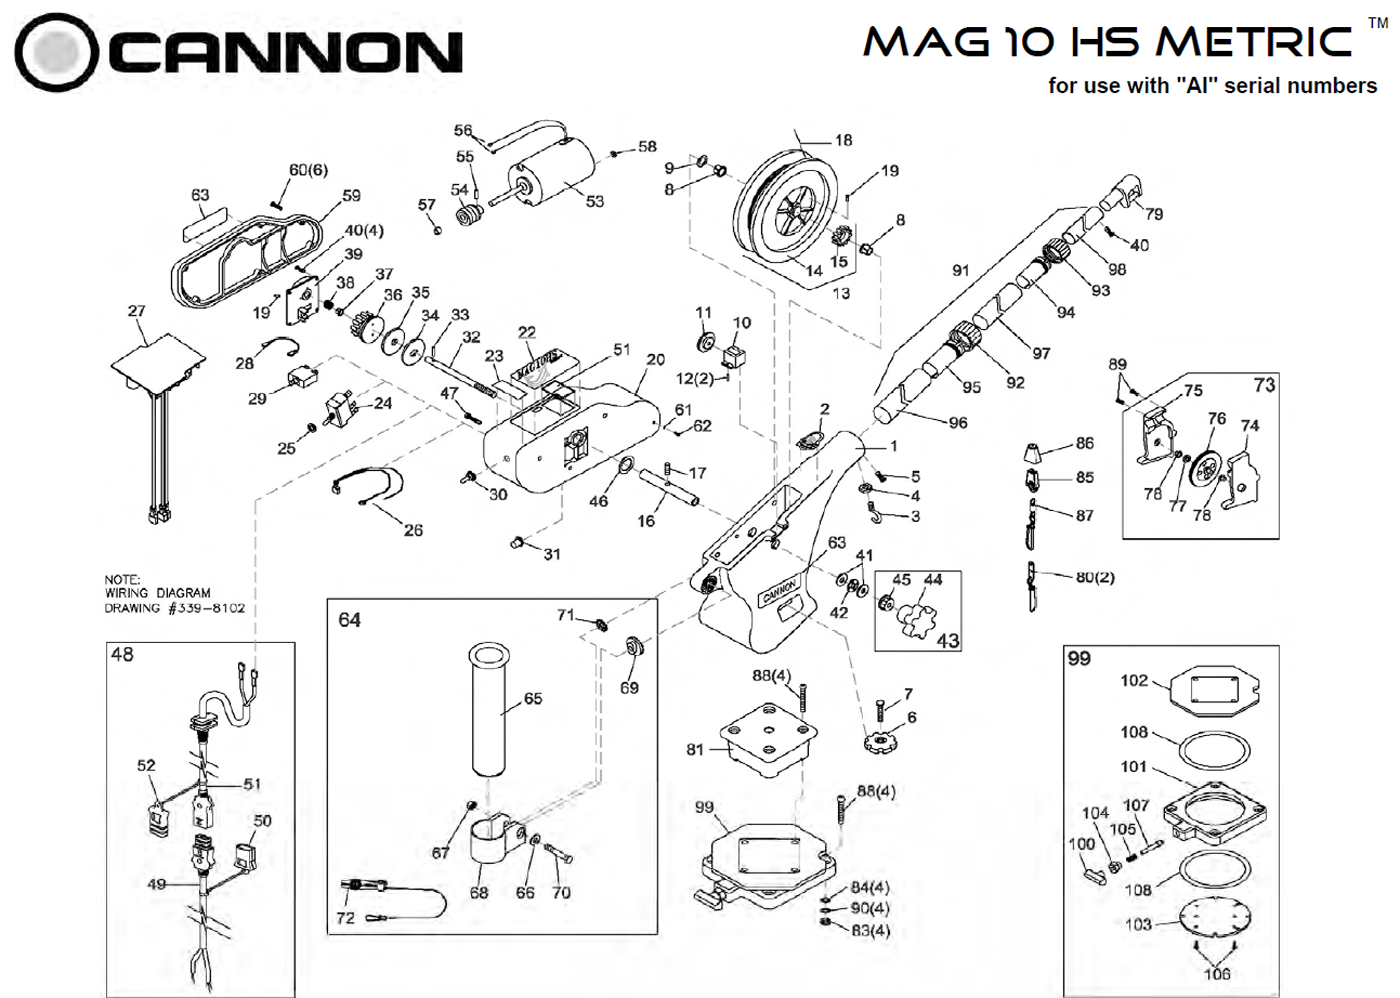 order cannon metric mag 10 hs electric downrigger parts